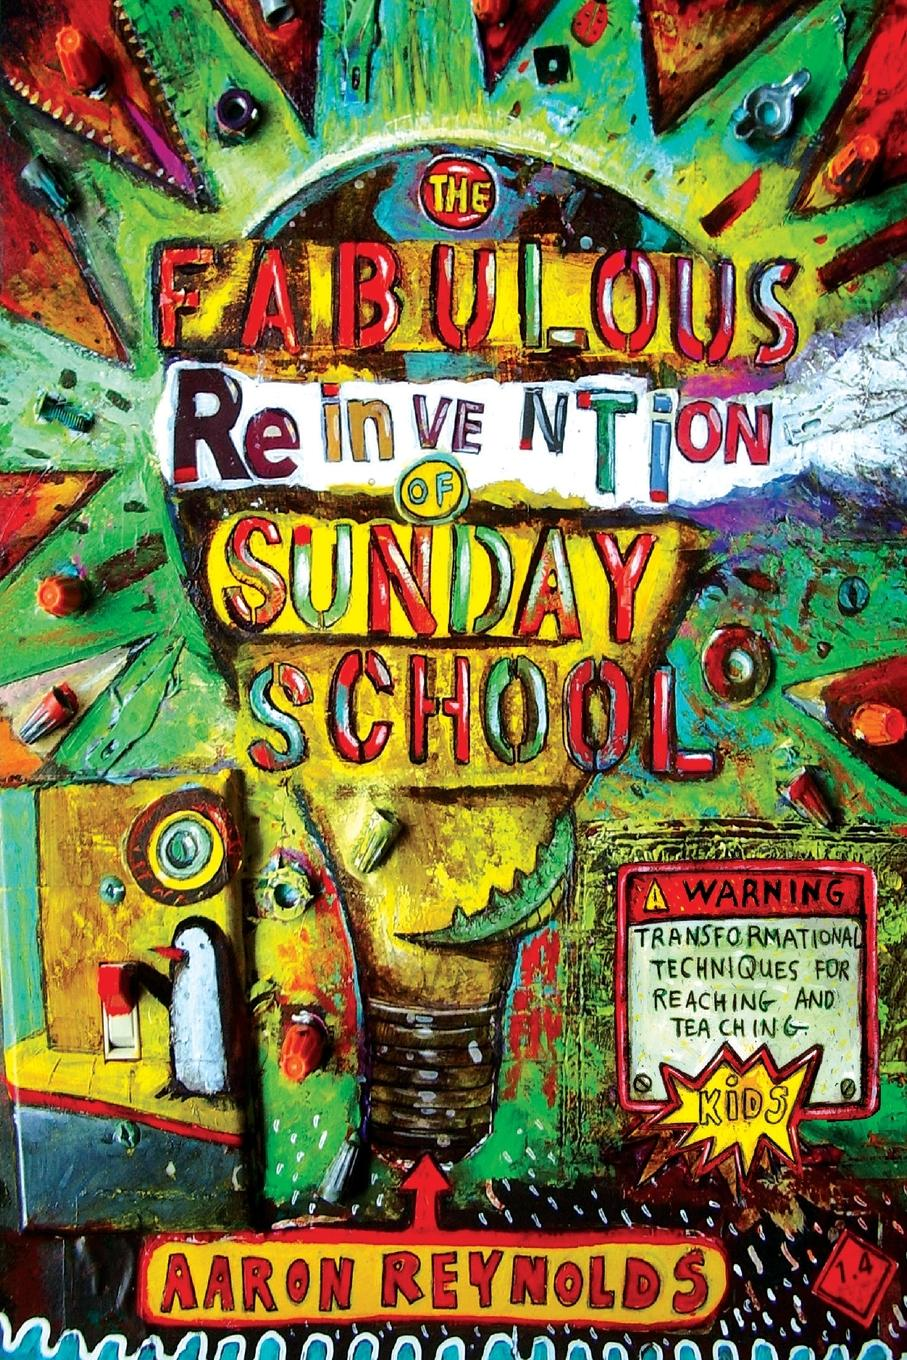 Aaron Reynolds The Fabulous Reinvention of Sunday School. Transformational Techniques for Reaching and Teaching Kids boris collardi f j private banking building a culture of excellence isbn 9780470826980